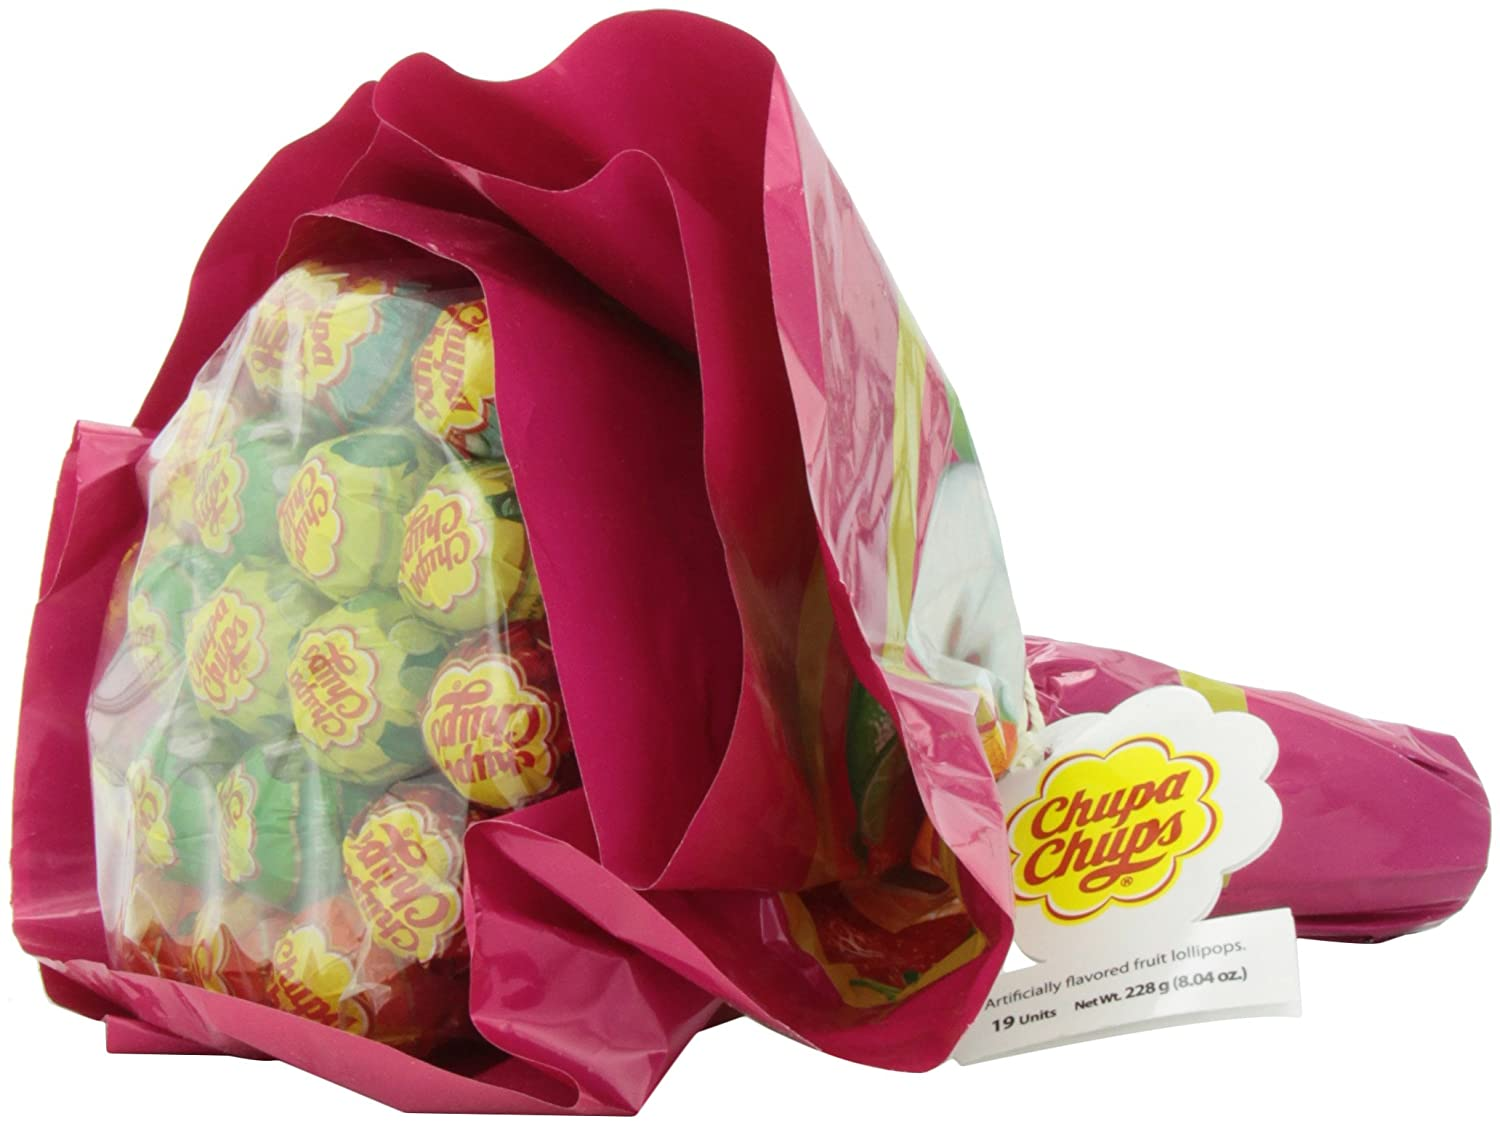 Amazon.com : Chupa Chups Large Flower Bouquet, 19 Count : Gummy ...